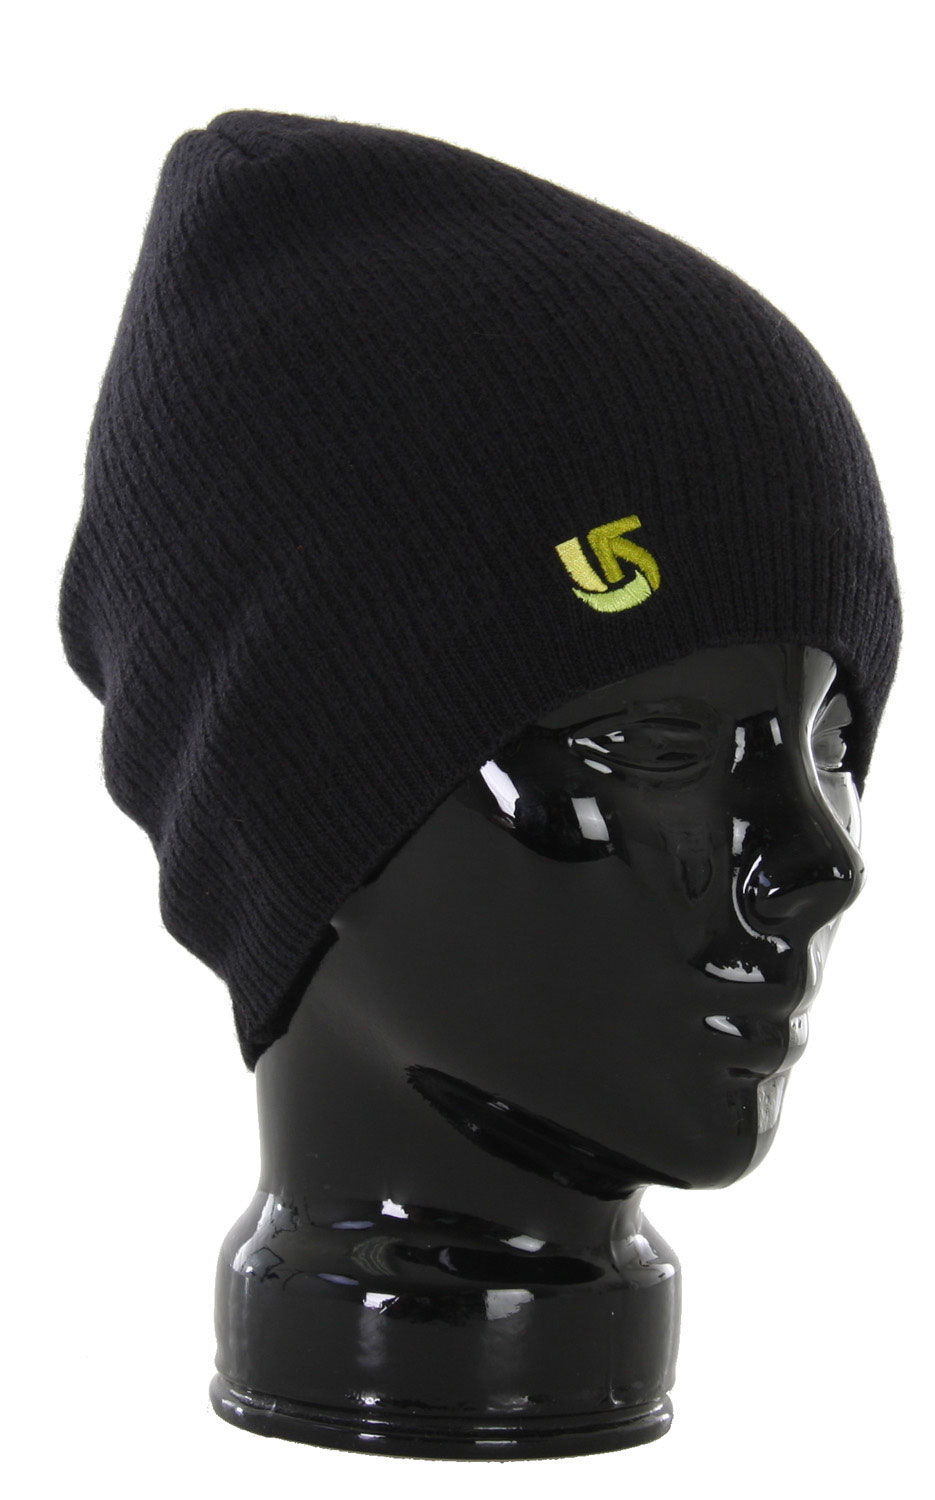 Snowboard The Burton Eco Woolen Beanie is a great hat that you'll enjoy wearing in all sorts of weather. It's a solid ribbed, eco-friendly beanie which features a embroidered logo on the front. It's made out of entirely organic wool, so you can feel good about wearing it. The skully fit means it'll stay snug on your head, which is important when you're always on the go. This is a perfect beanie for people who are serious about the environment and their sports.Key Features of the Burton Eco Woolen Beanie: 100% Organic Wool Solid Rib Eco-Friendly Beanie with Process Logo Embroidery Skully Fit - $16.07